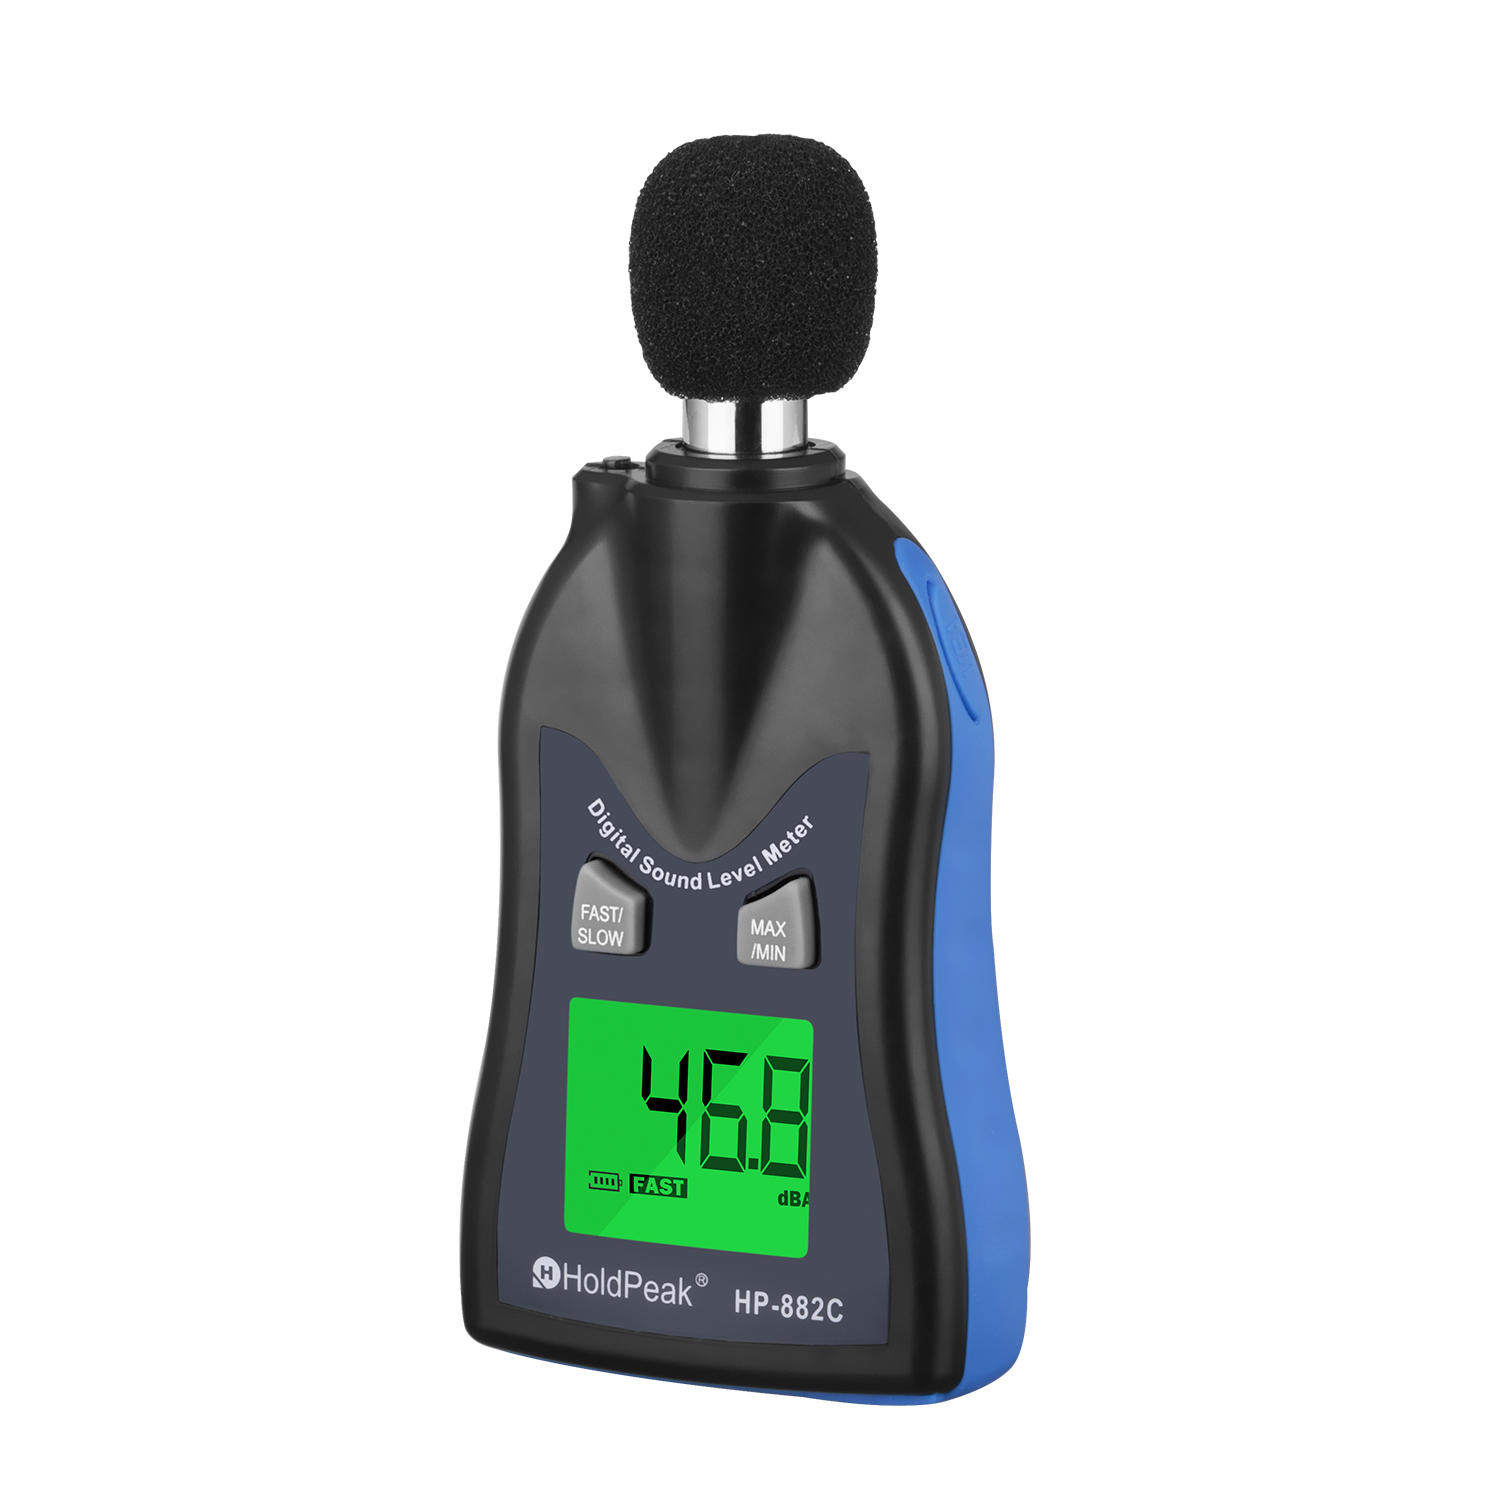 Digital Sound Level Meter, Architectural Acoustics Measurement HP-882C